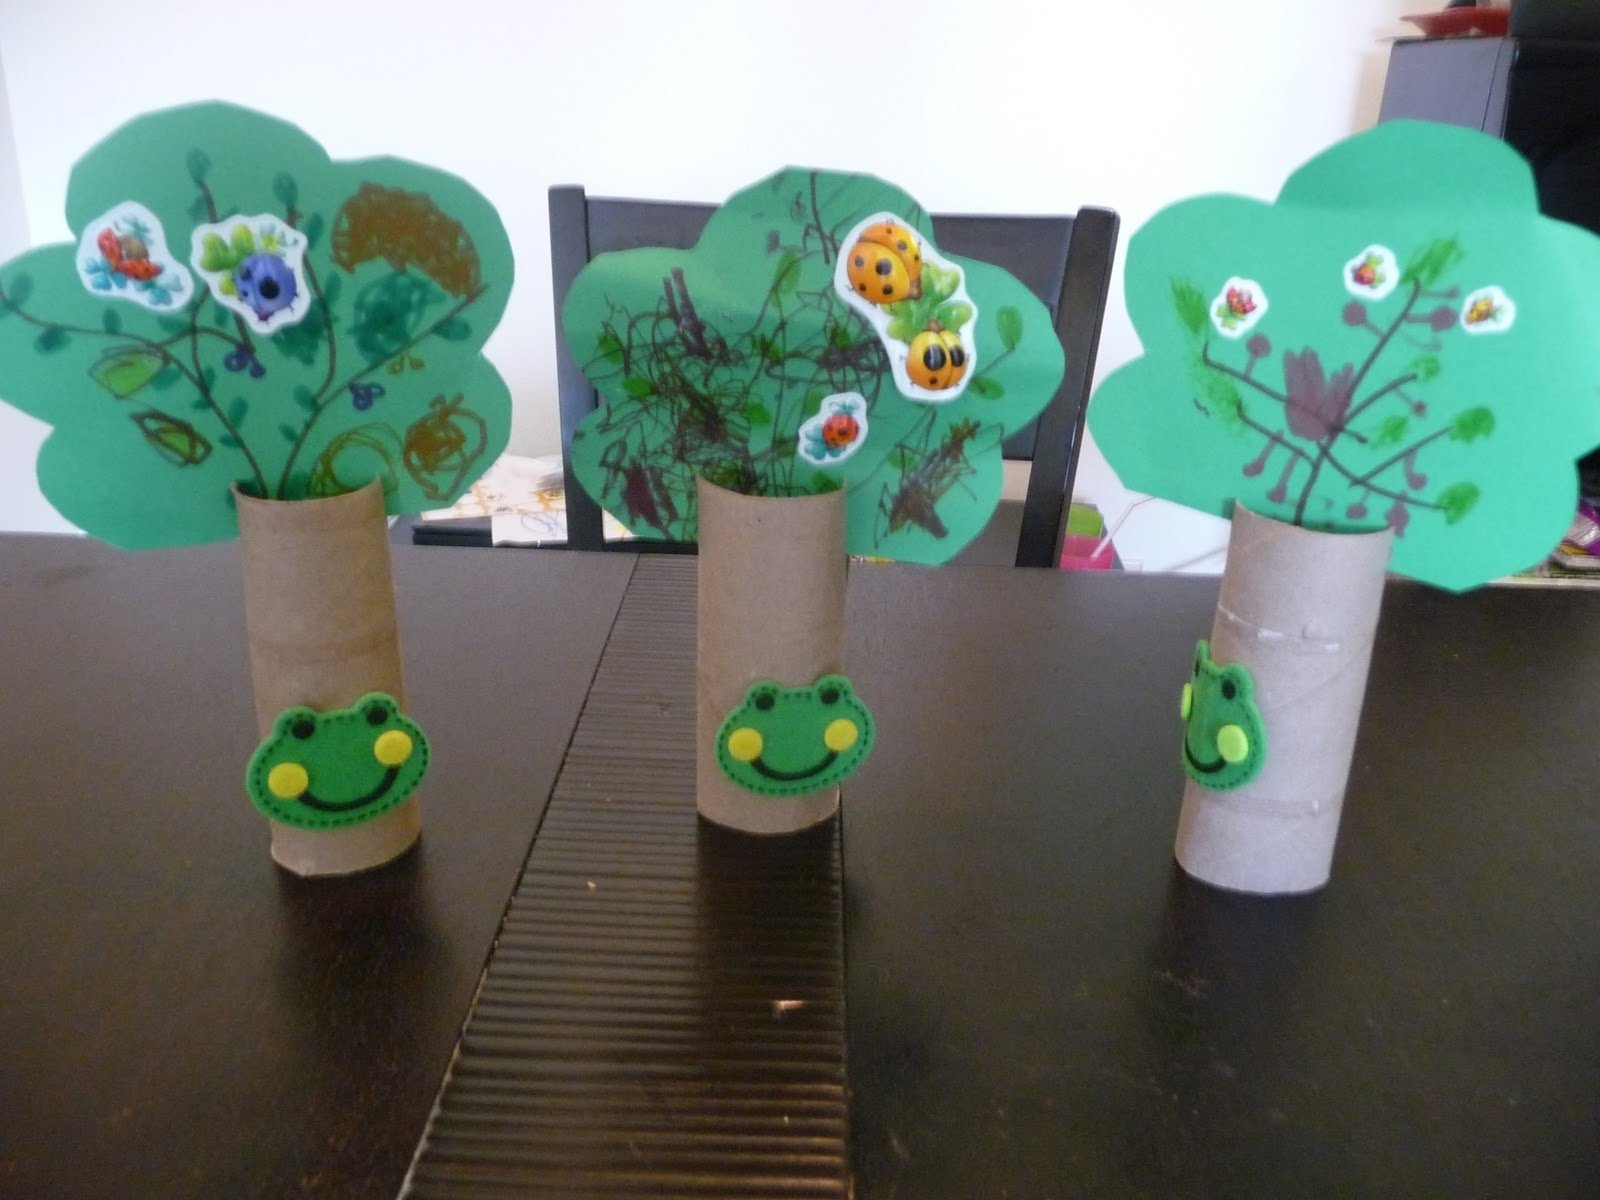 10 Cute Craft Ideas For 3 Year Olds crafts inspiring paper crafts for 3 year olds paper crafts for 3 2021